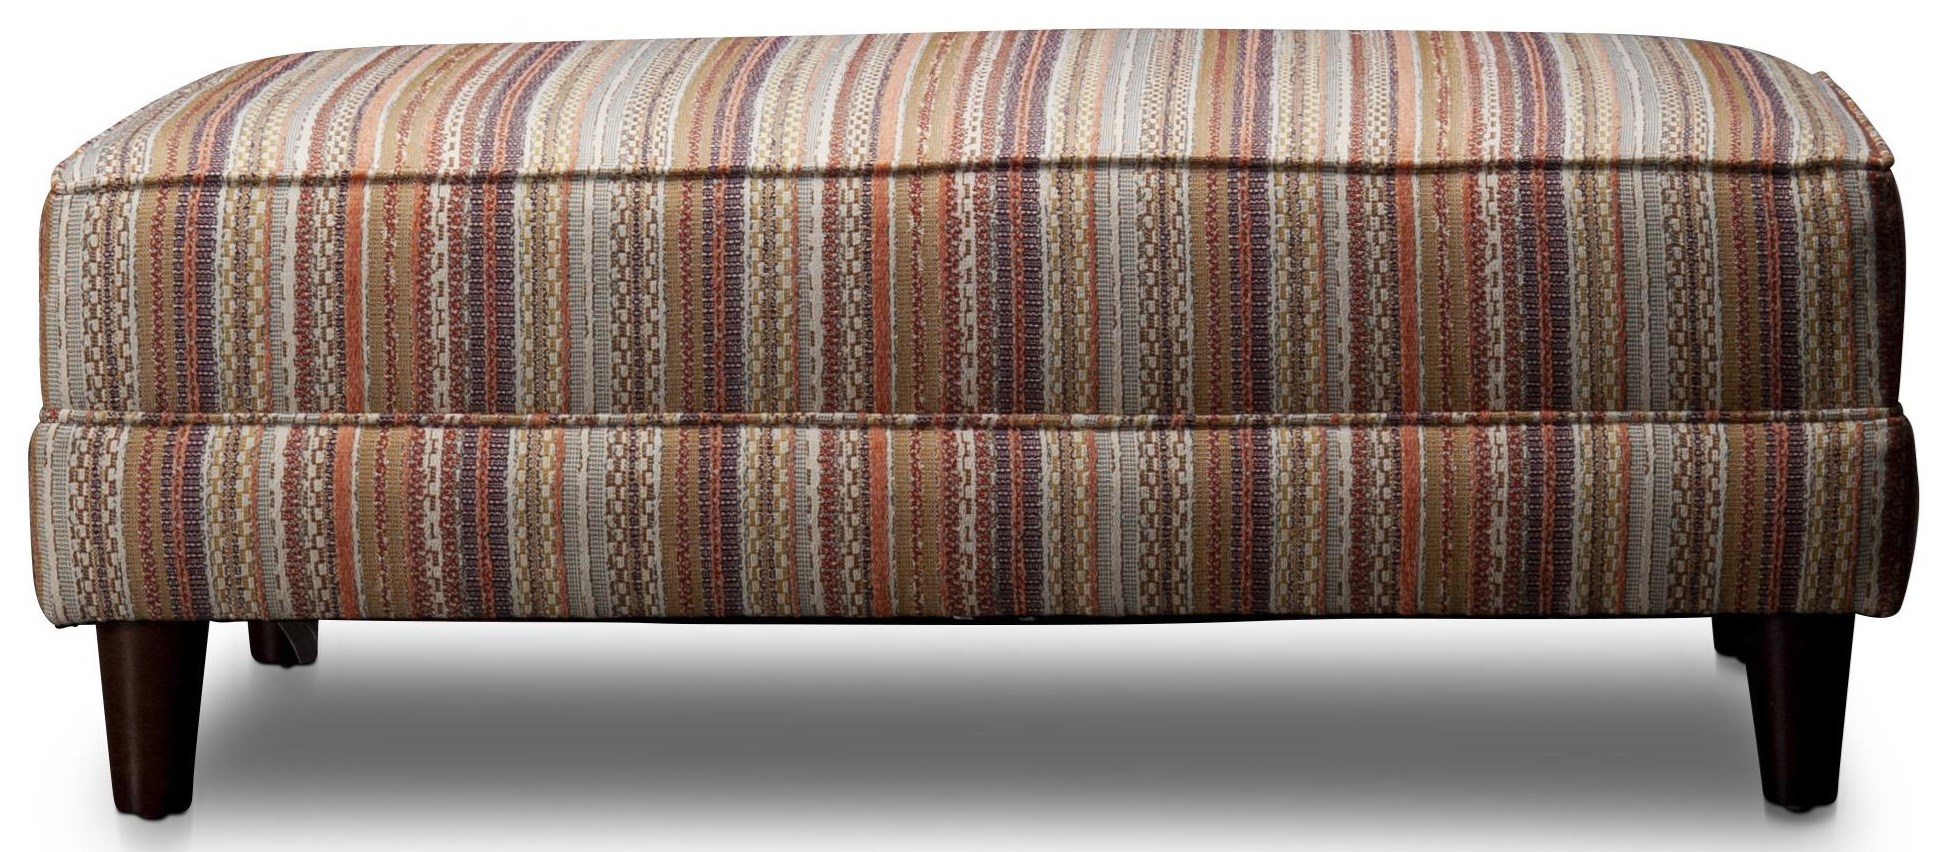 Petra Petra Cocktail Ottoman by Craftmaster at Morris Home